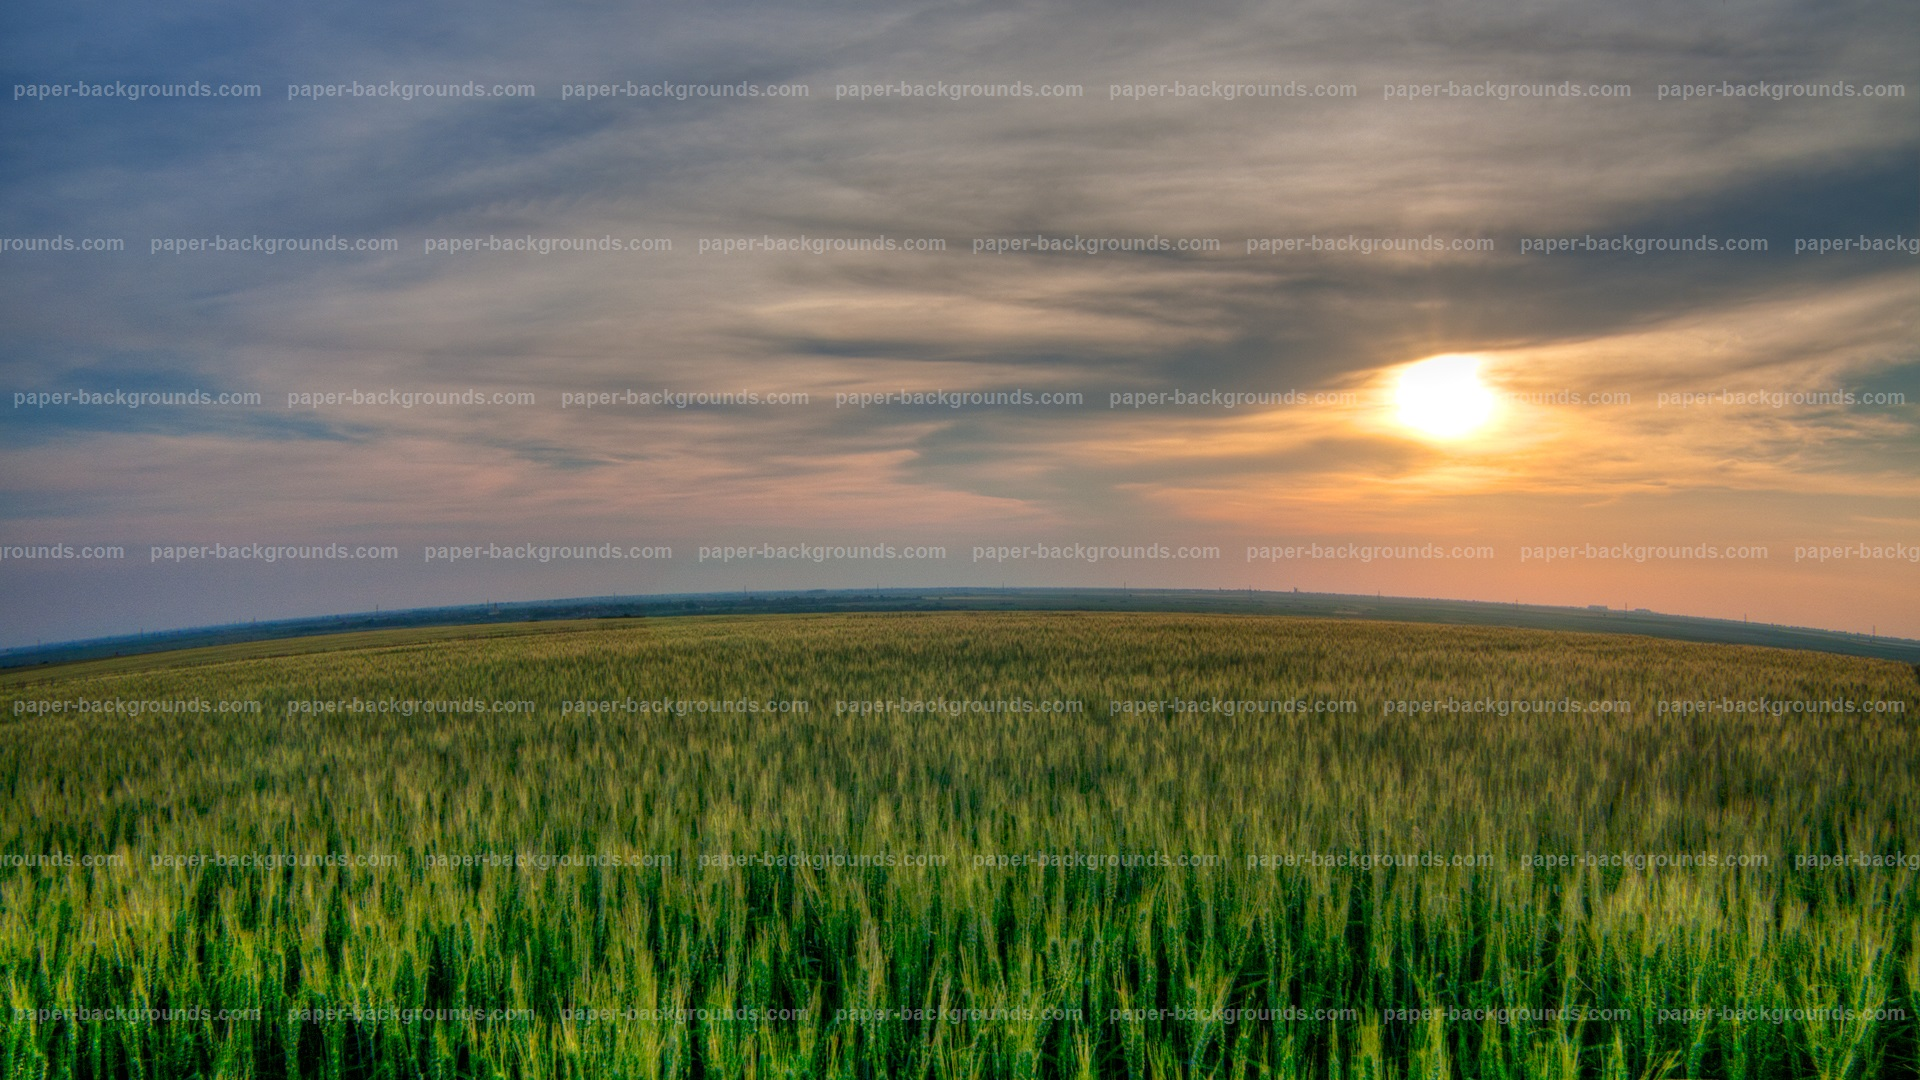 Sunet Sky Green Field Background HD